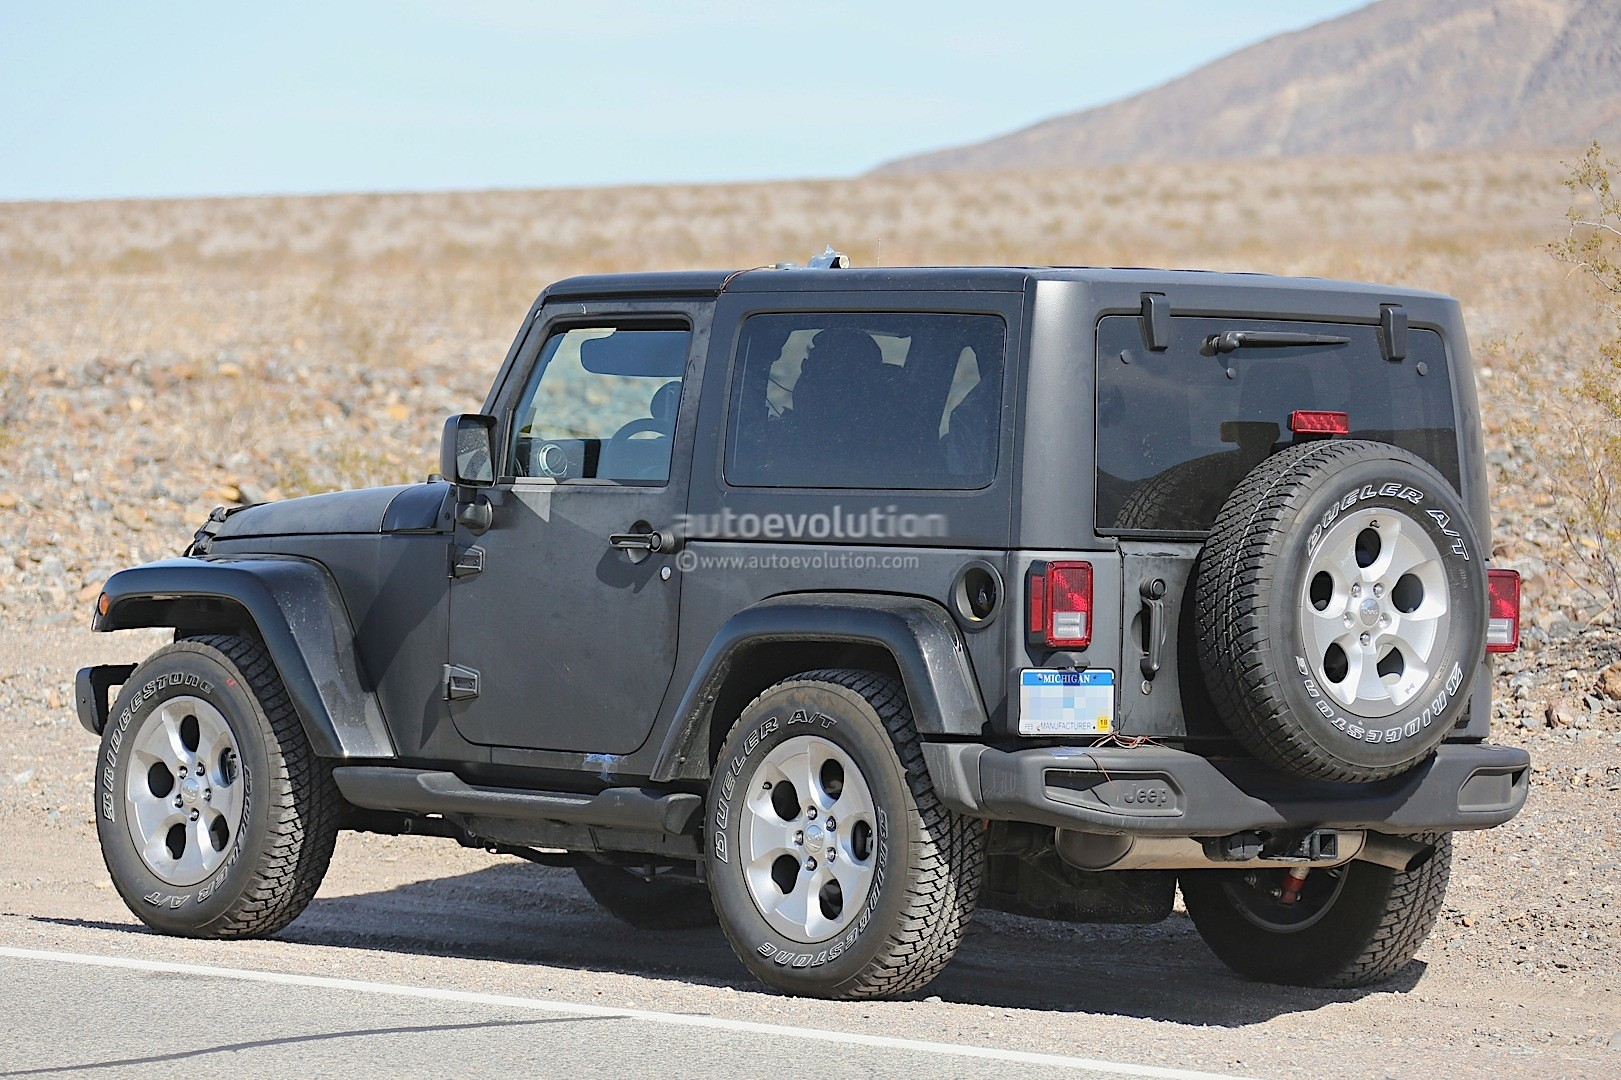 new 2018 jeep wrangler spied testing in the desert will. Black Bedroom Furniture Sets. Home Design Ideas